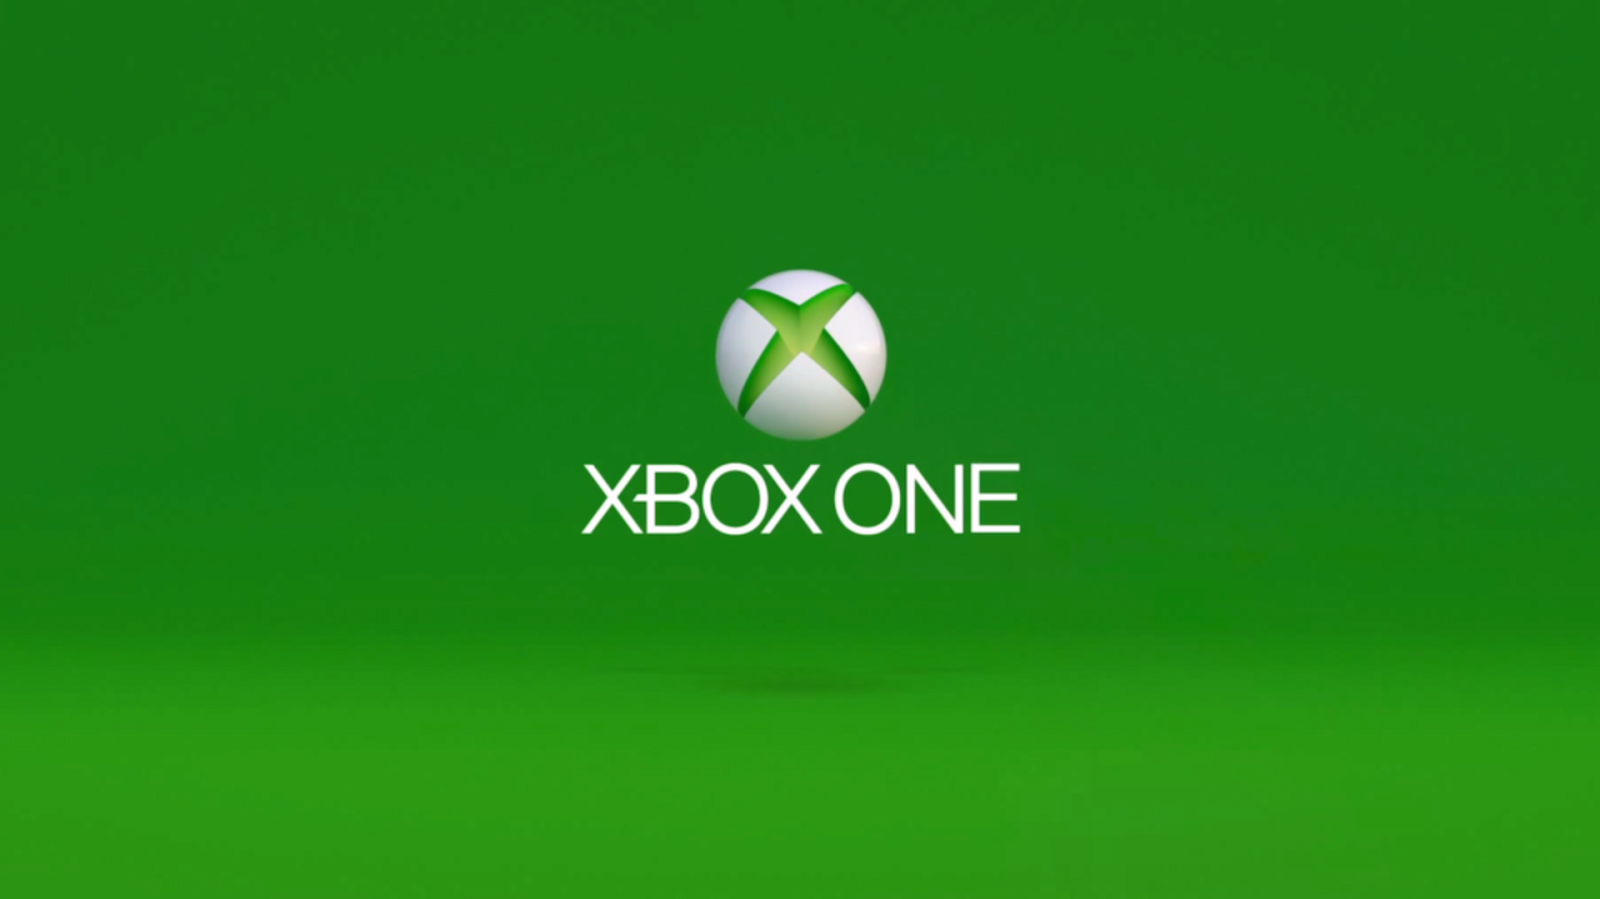 3D GAMING  XBOX ONE To Support 3D And 4KXbox One